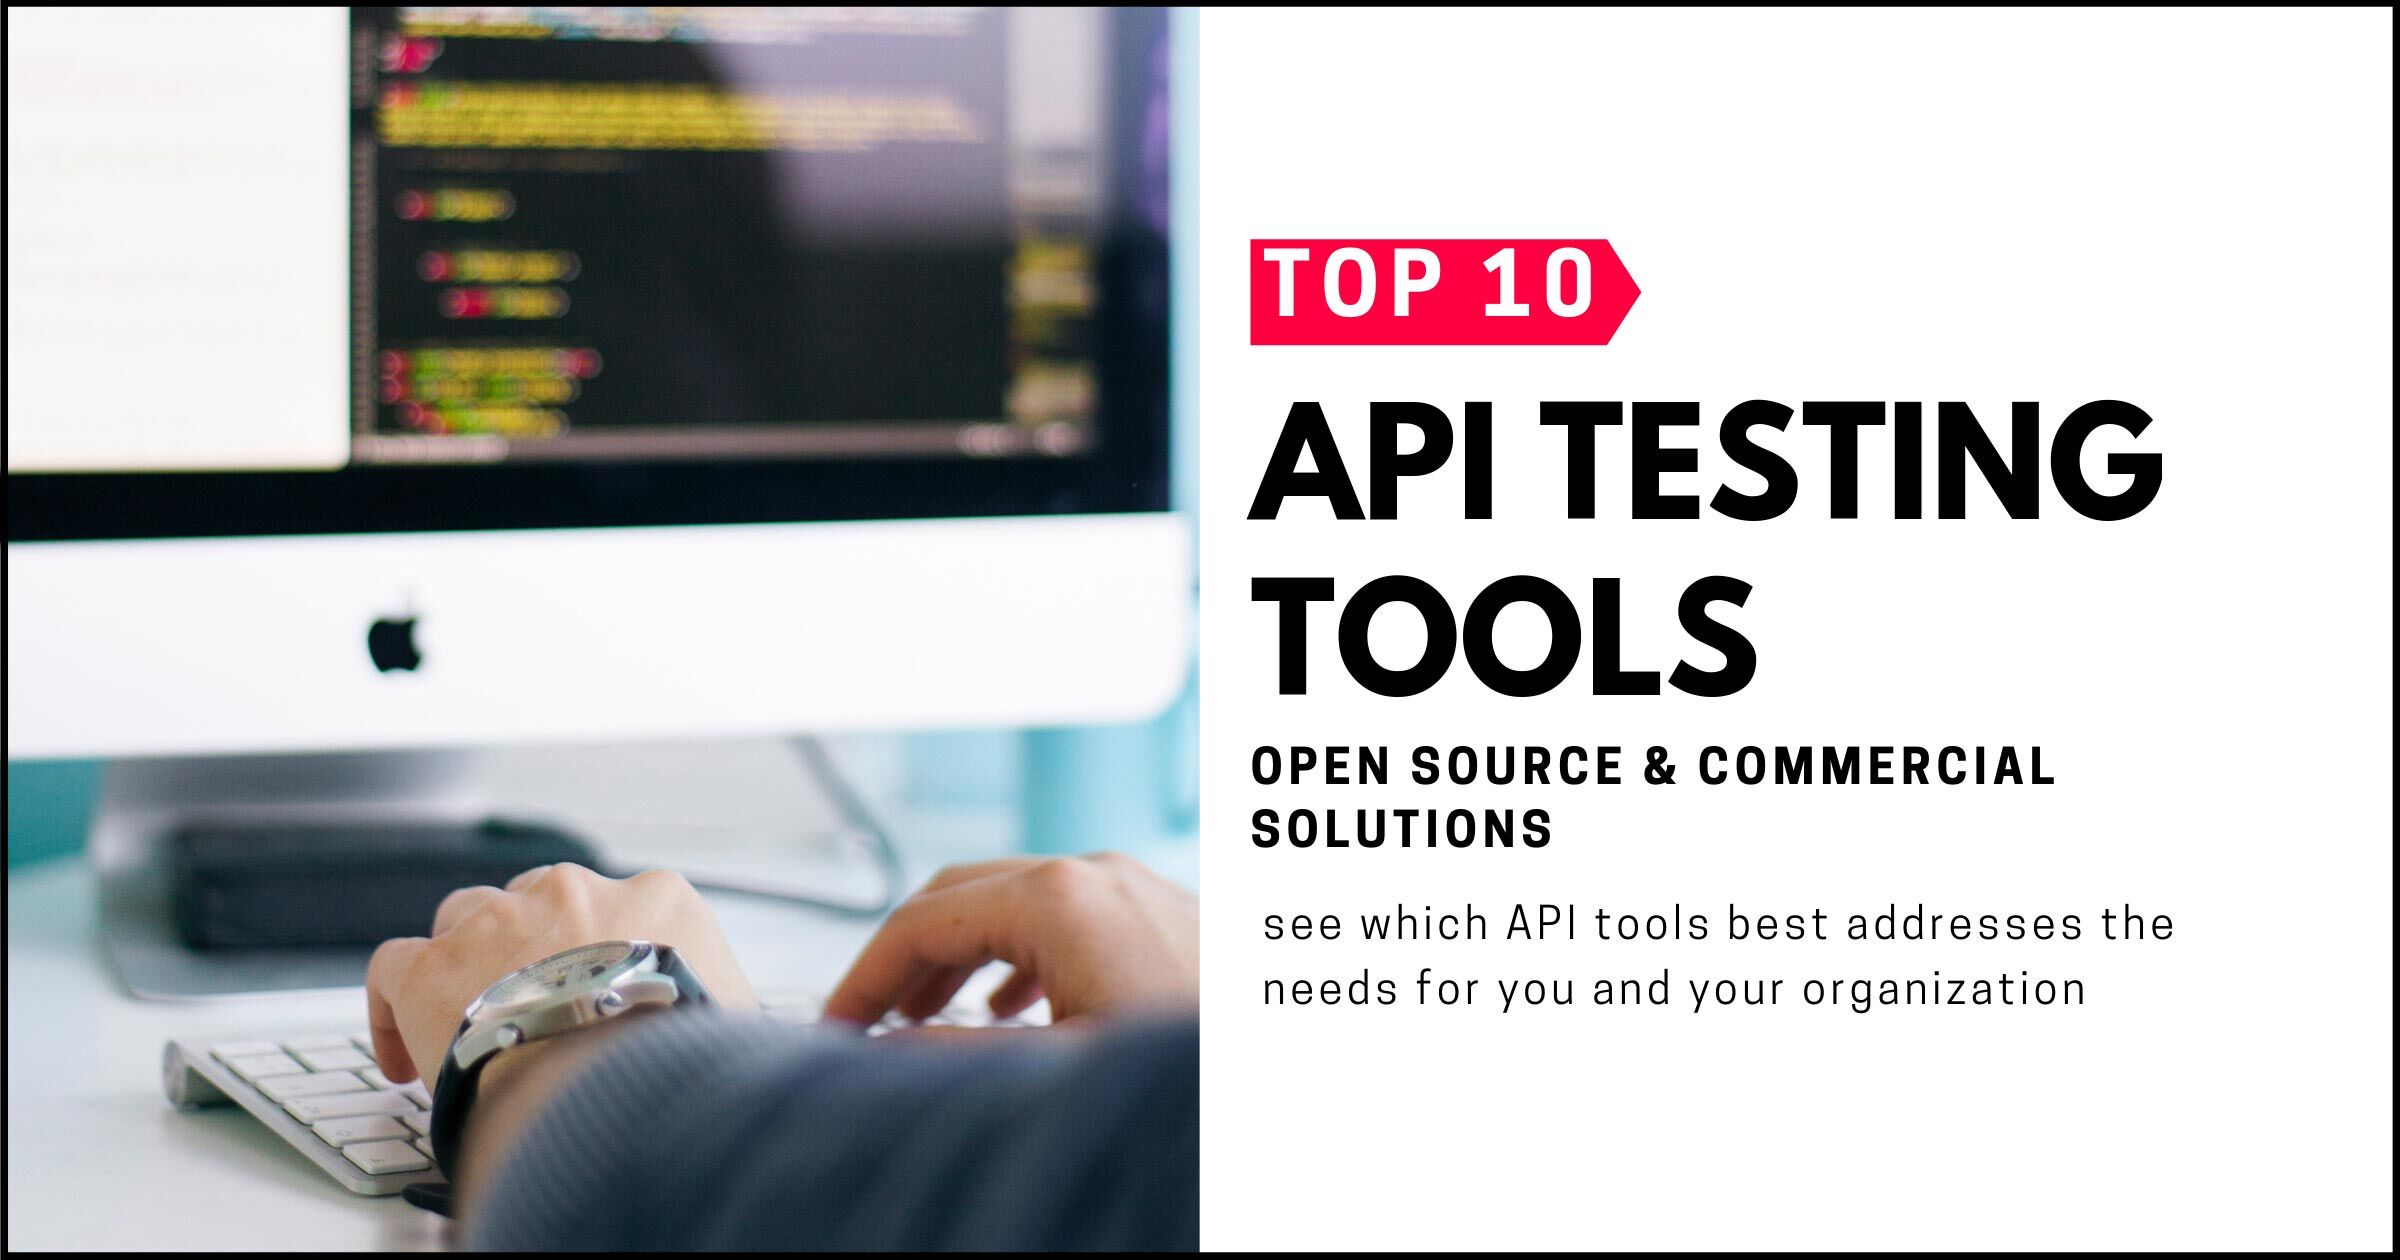 The 10 Best API Testing Tools on the Market